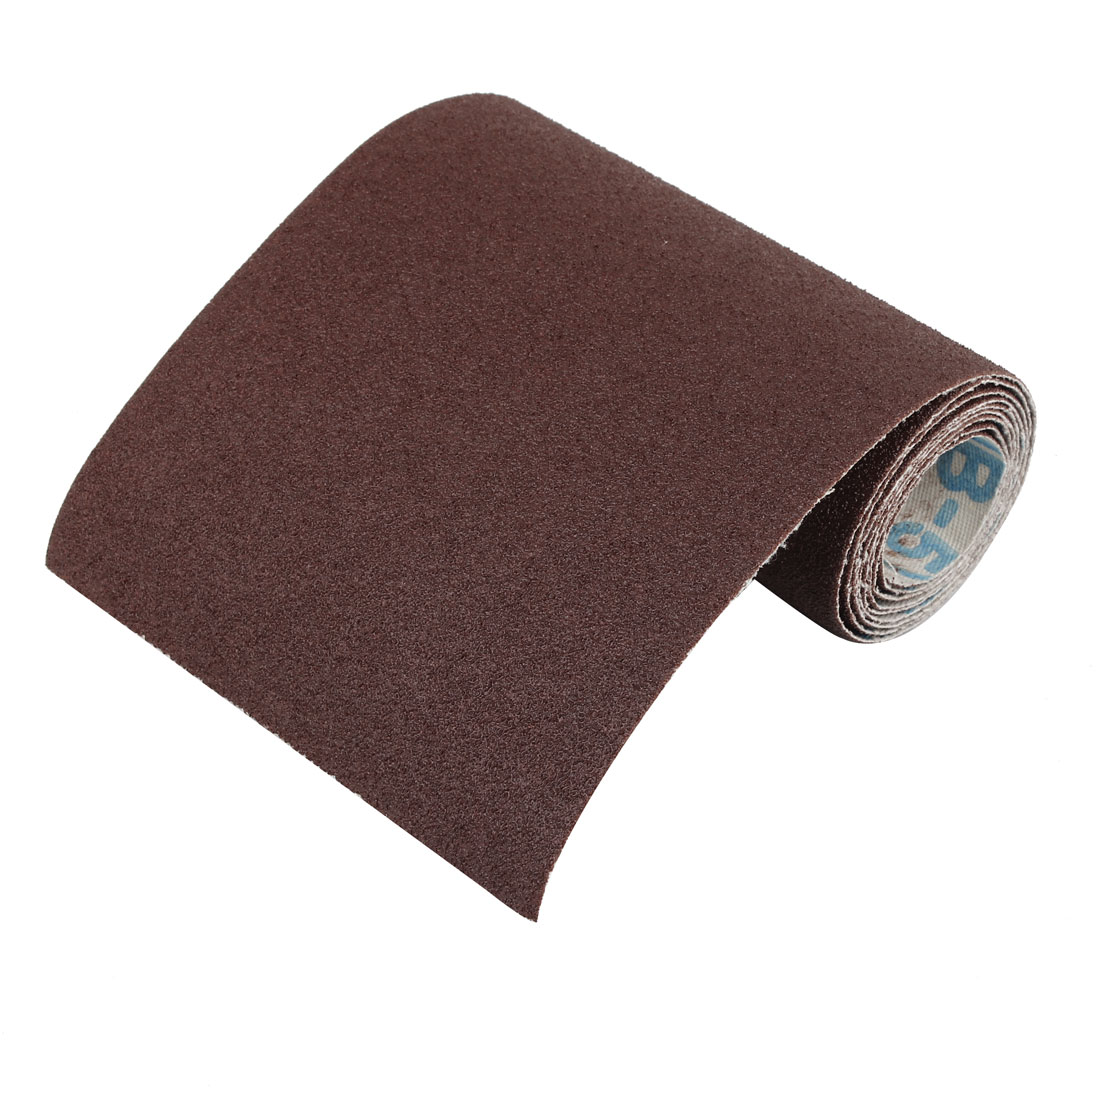 10cm Wide 100Grit Abrasive Sheet Sanding Belt Sandpaper Sand Sheet